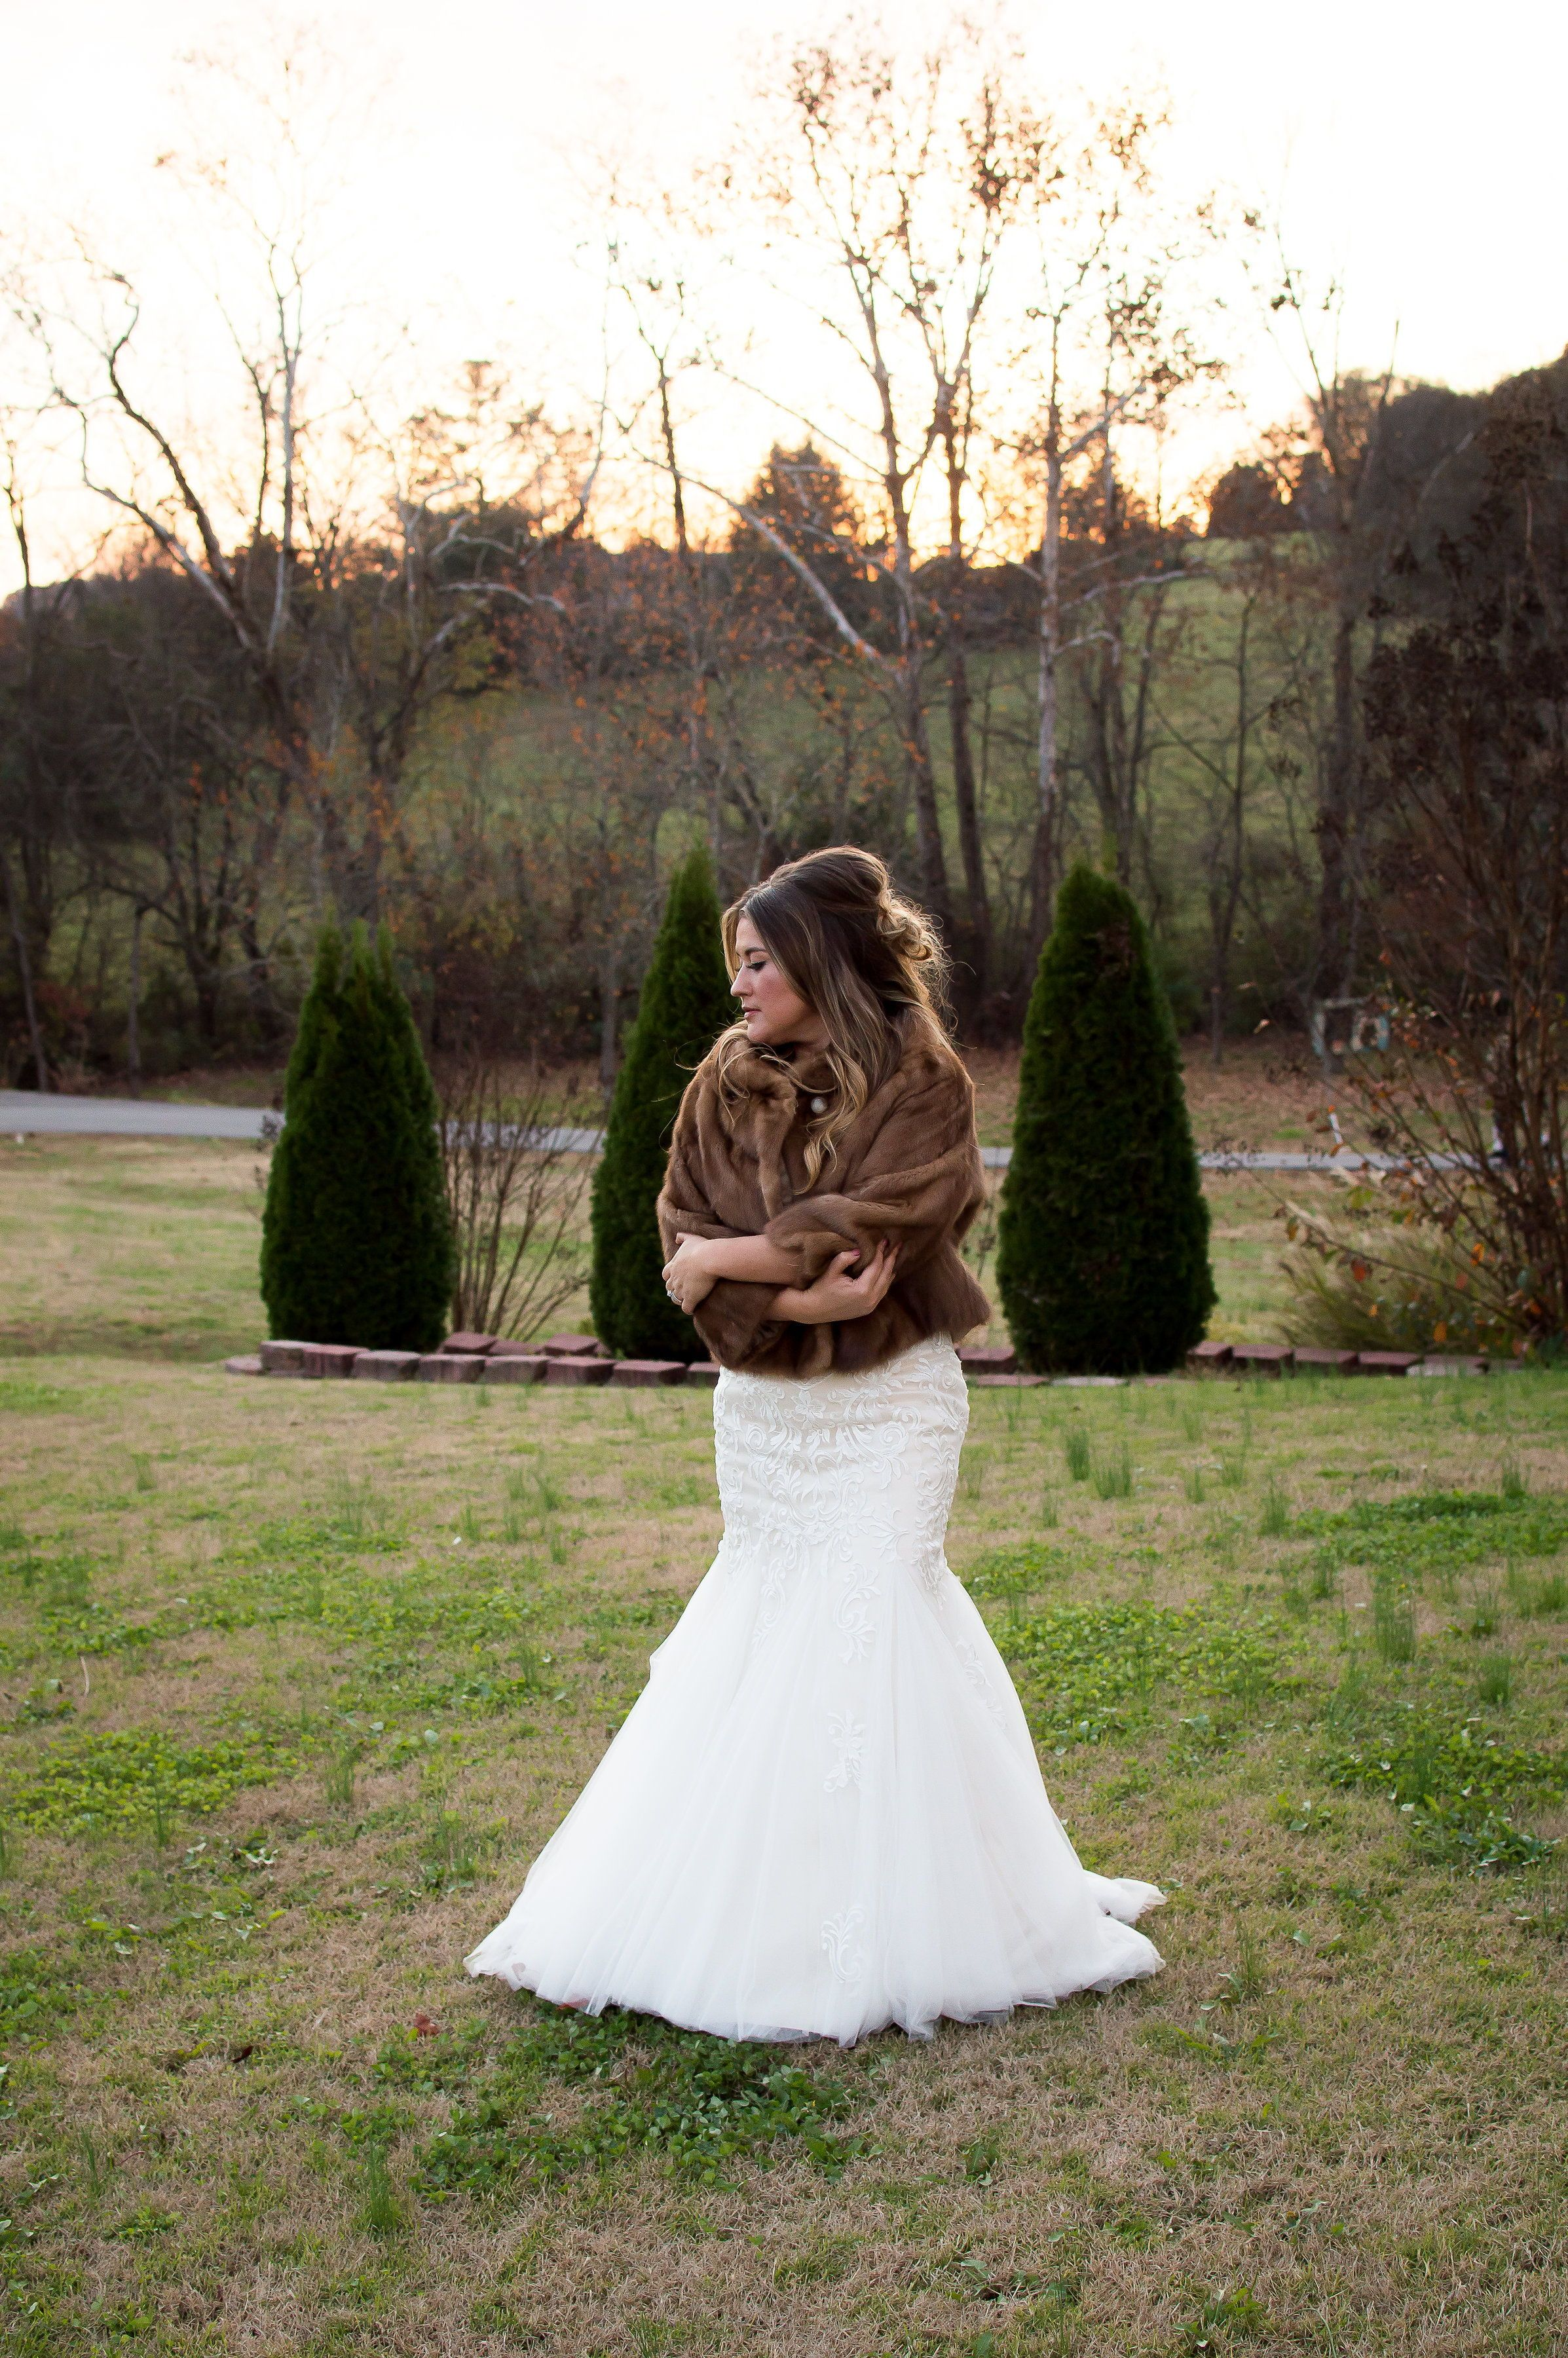 Fur wedding dress  I Found A Love For Me  Bridal Party Accessories  Pinterest